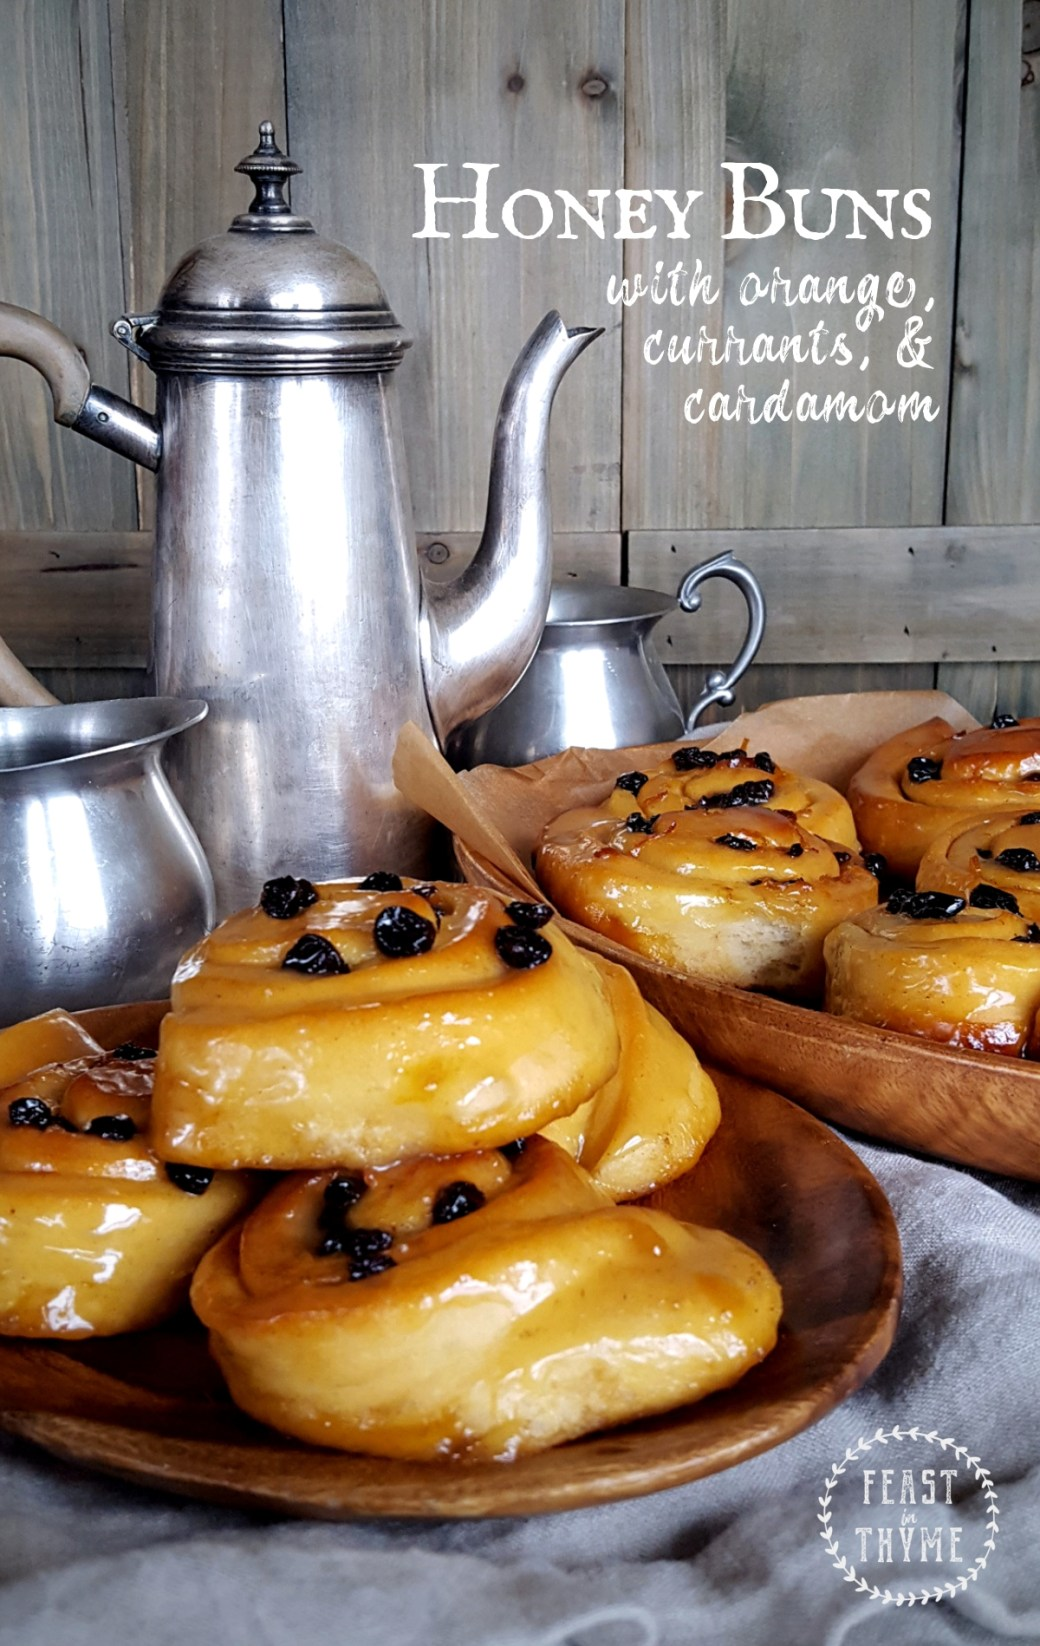 Honey Buns with Orange, Currants & Cardamom